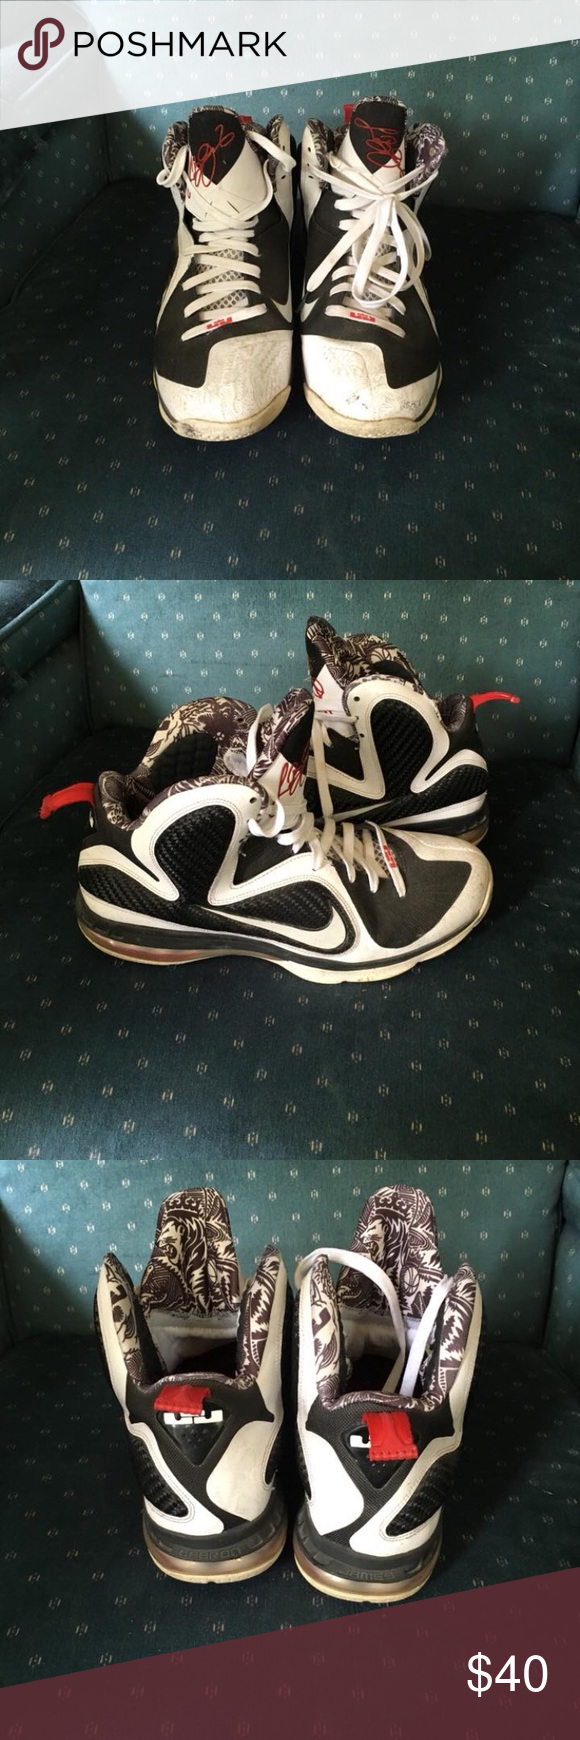 "outlet store 62232 3dc37 Nike LeBron 9 ""Freegums"" sneakers size 11.5 Nike LeBron 9 ""Freegums""  sneakers"